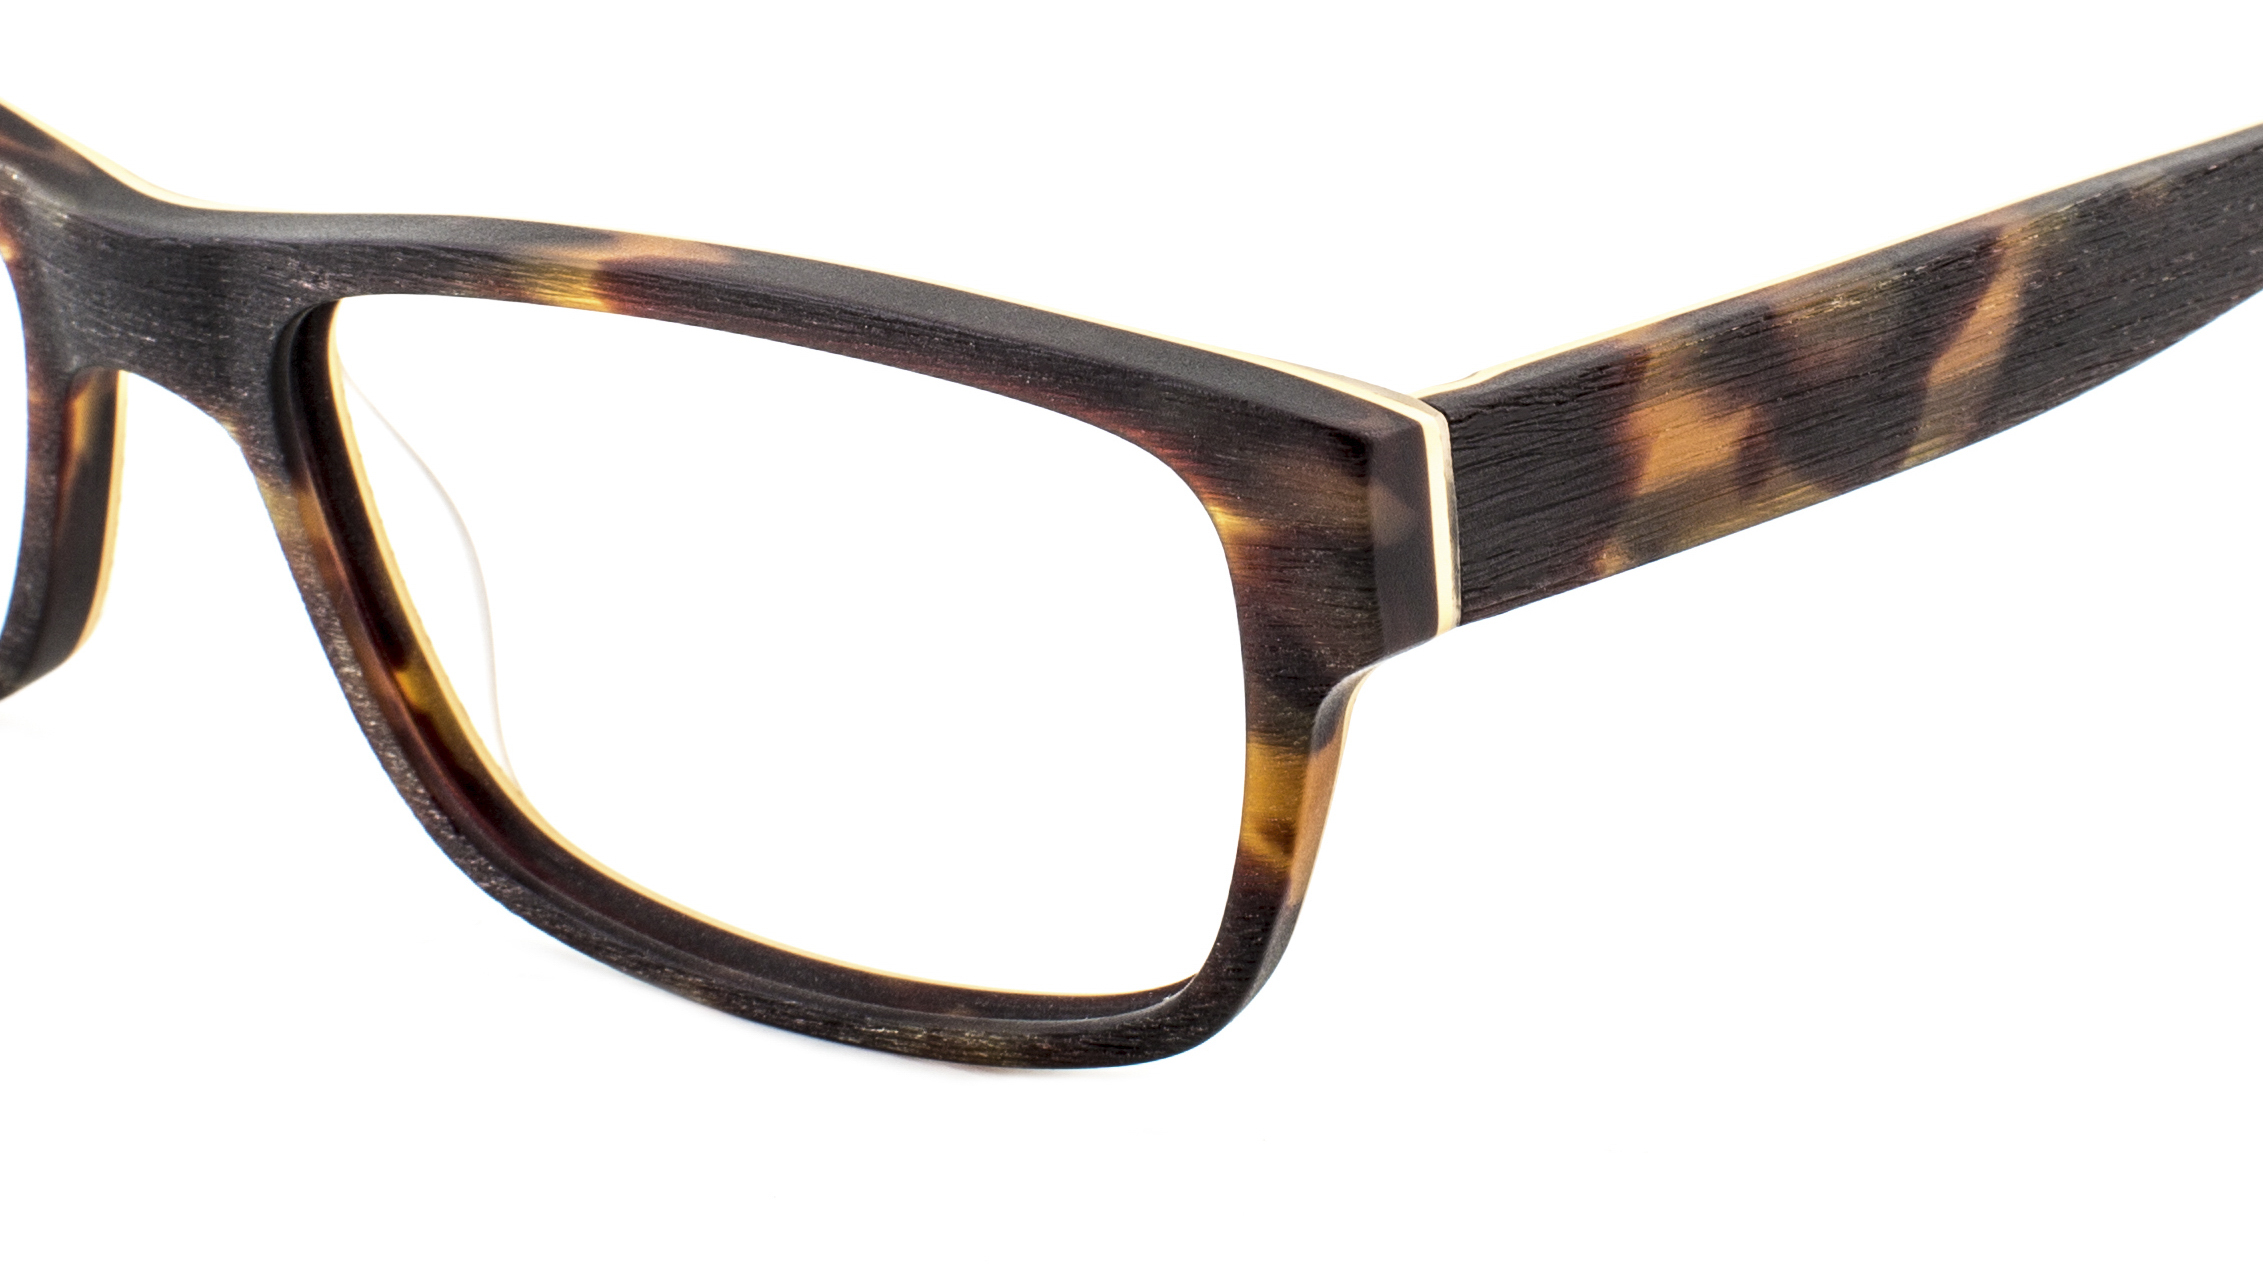 dick-frizzell-frame_close-up_sku-30473898_rrp-2-pairs-from-169